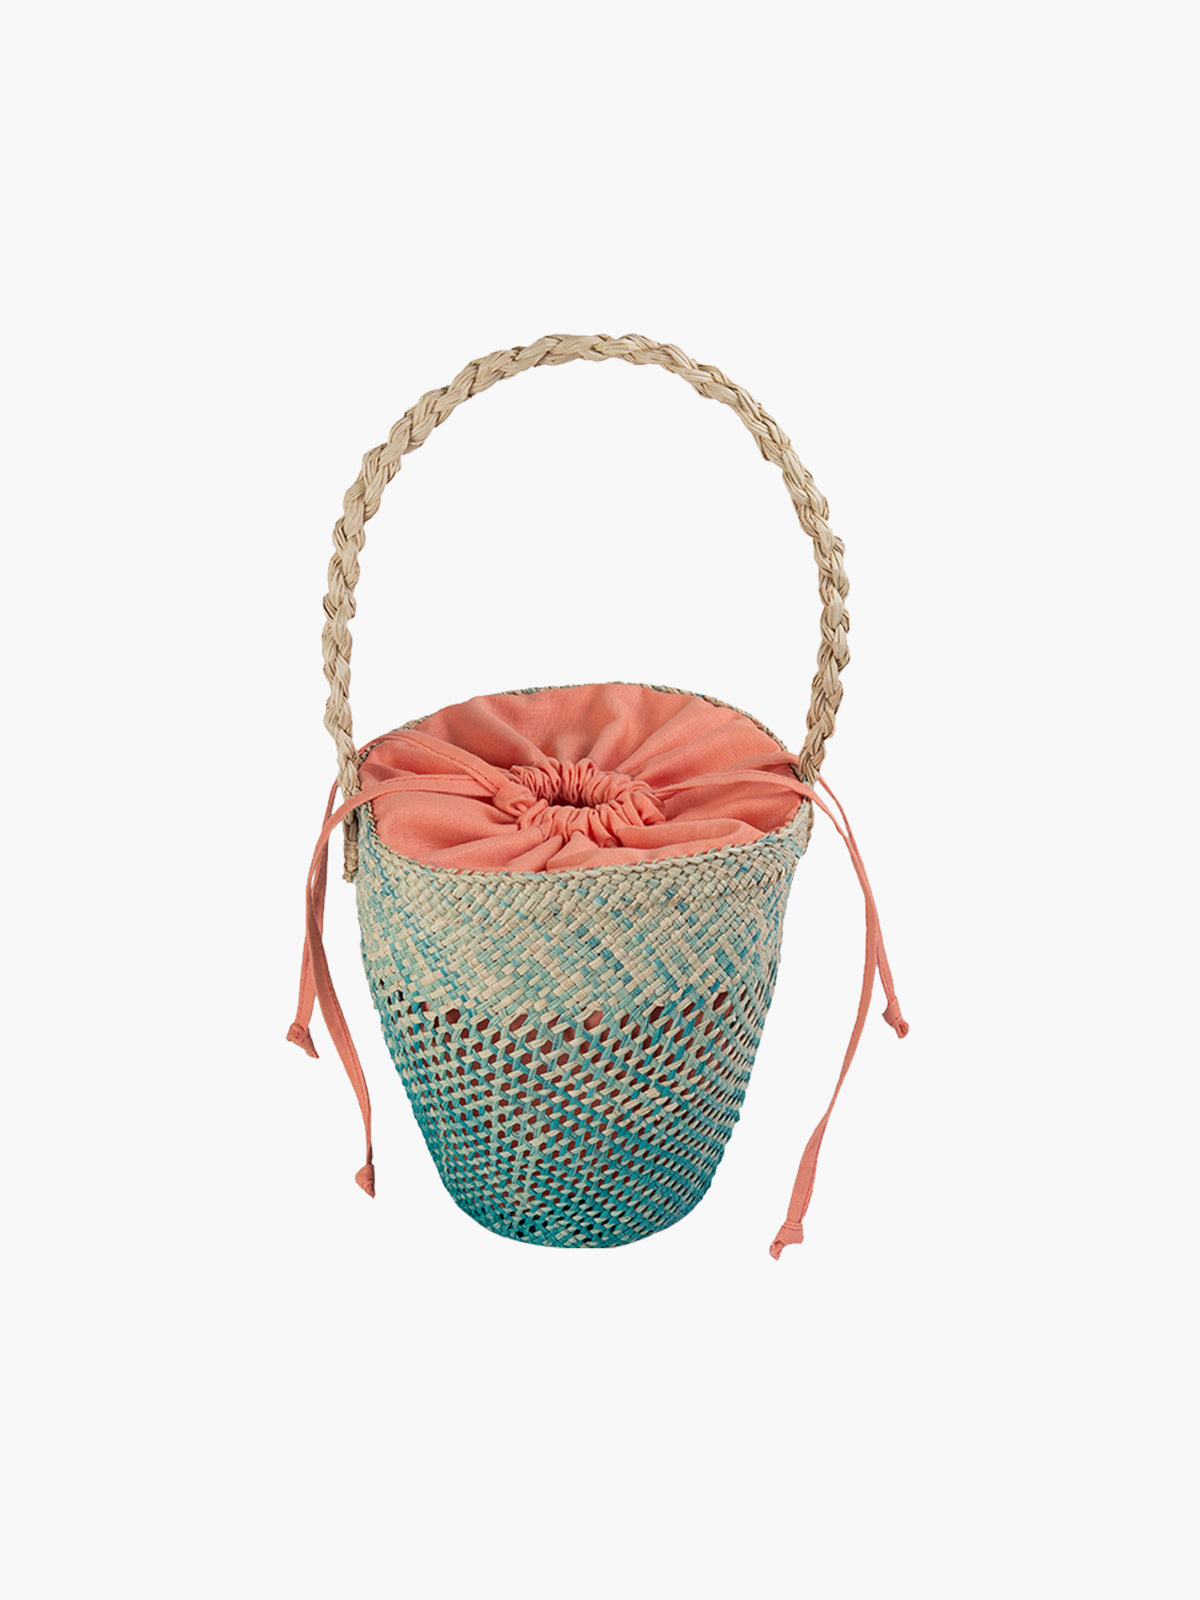 Basket Bag | Teal Basket Bag | Teal